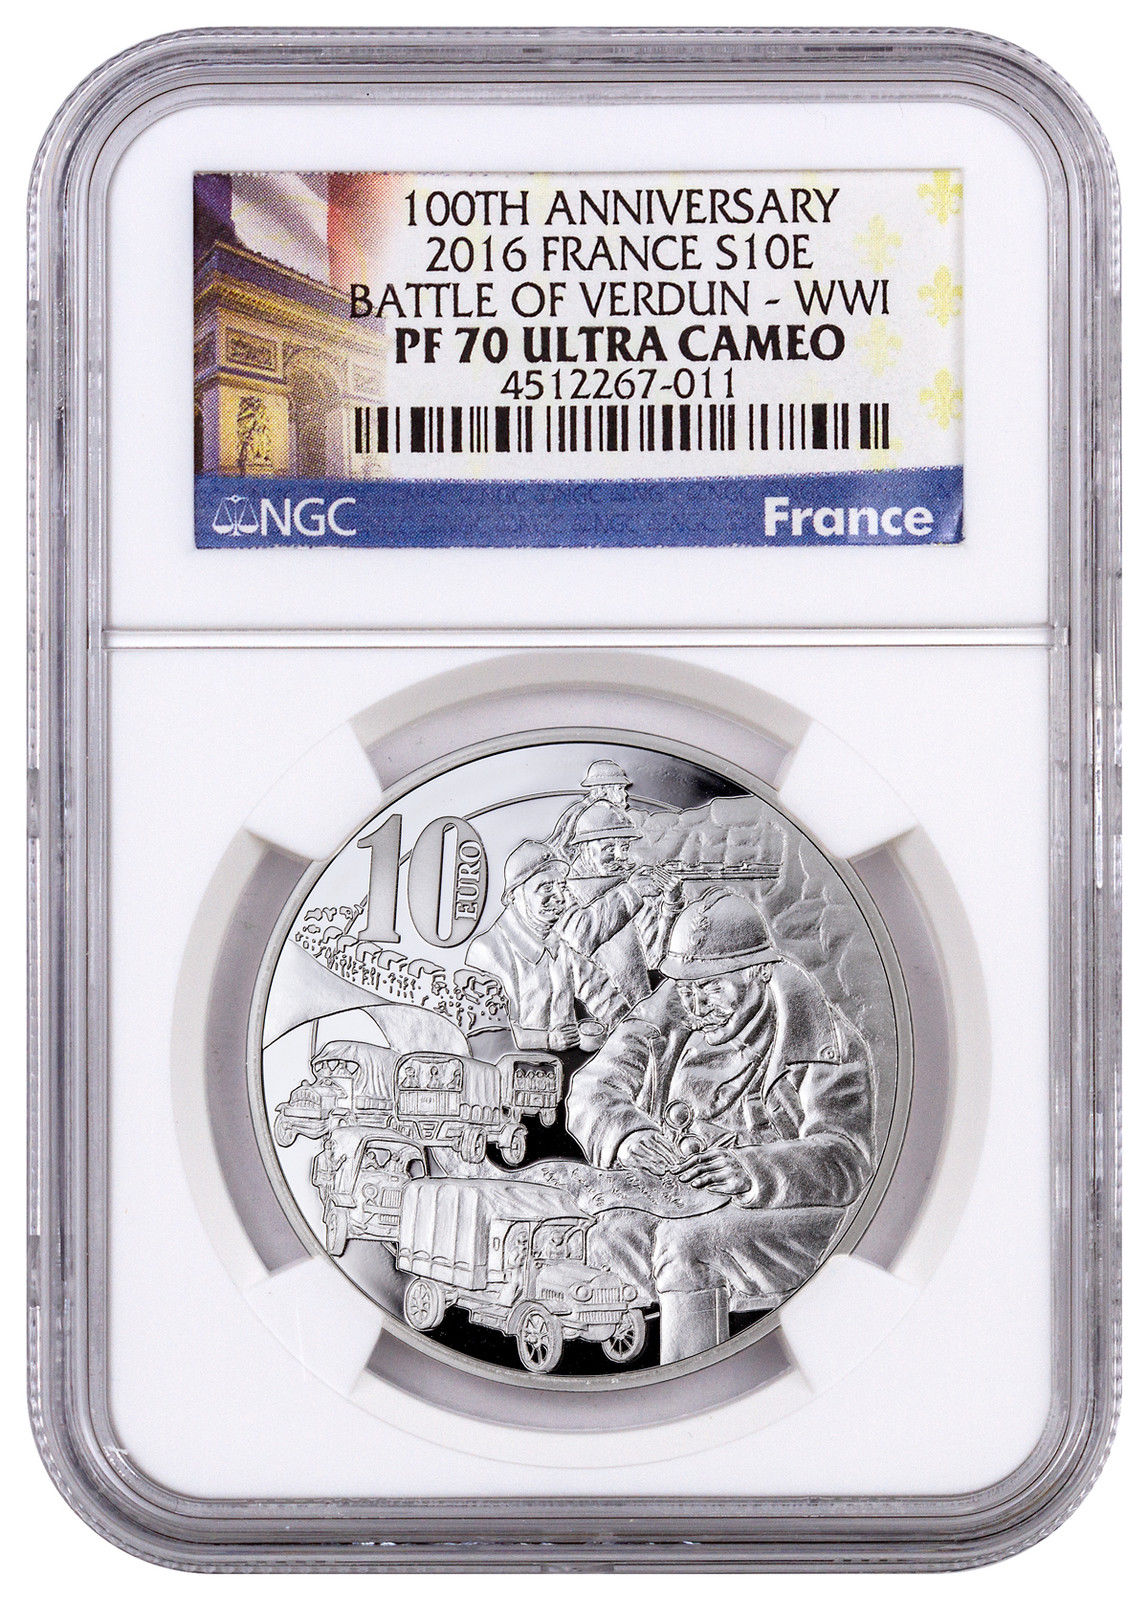 Haining, France, 2016, World War I, Centennial Series, Verdun, sacred Road, silver coin, NGC-PF7